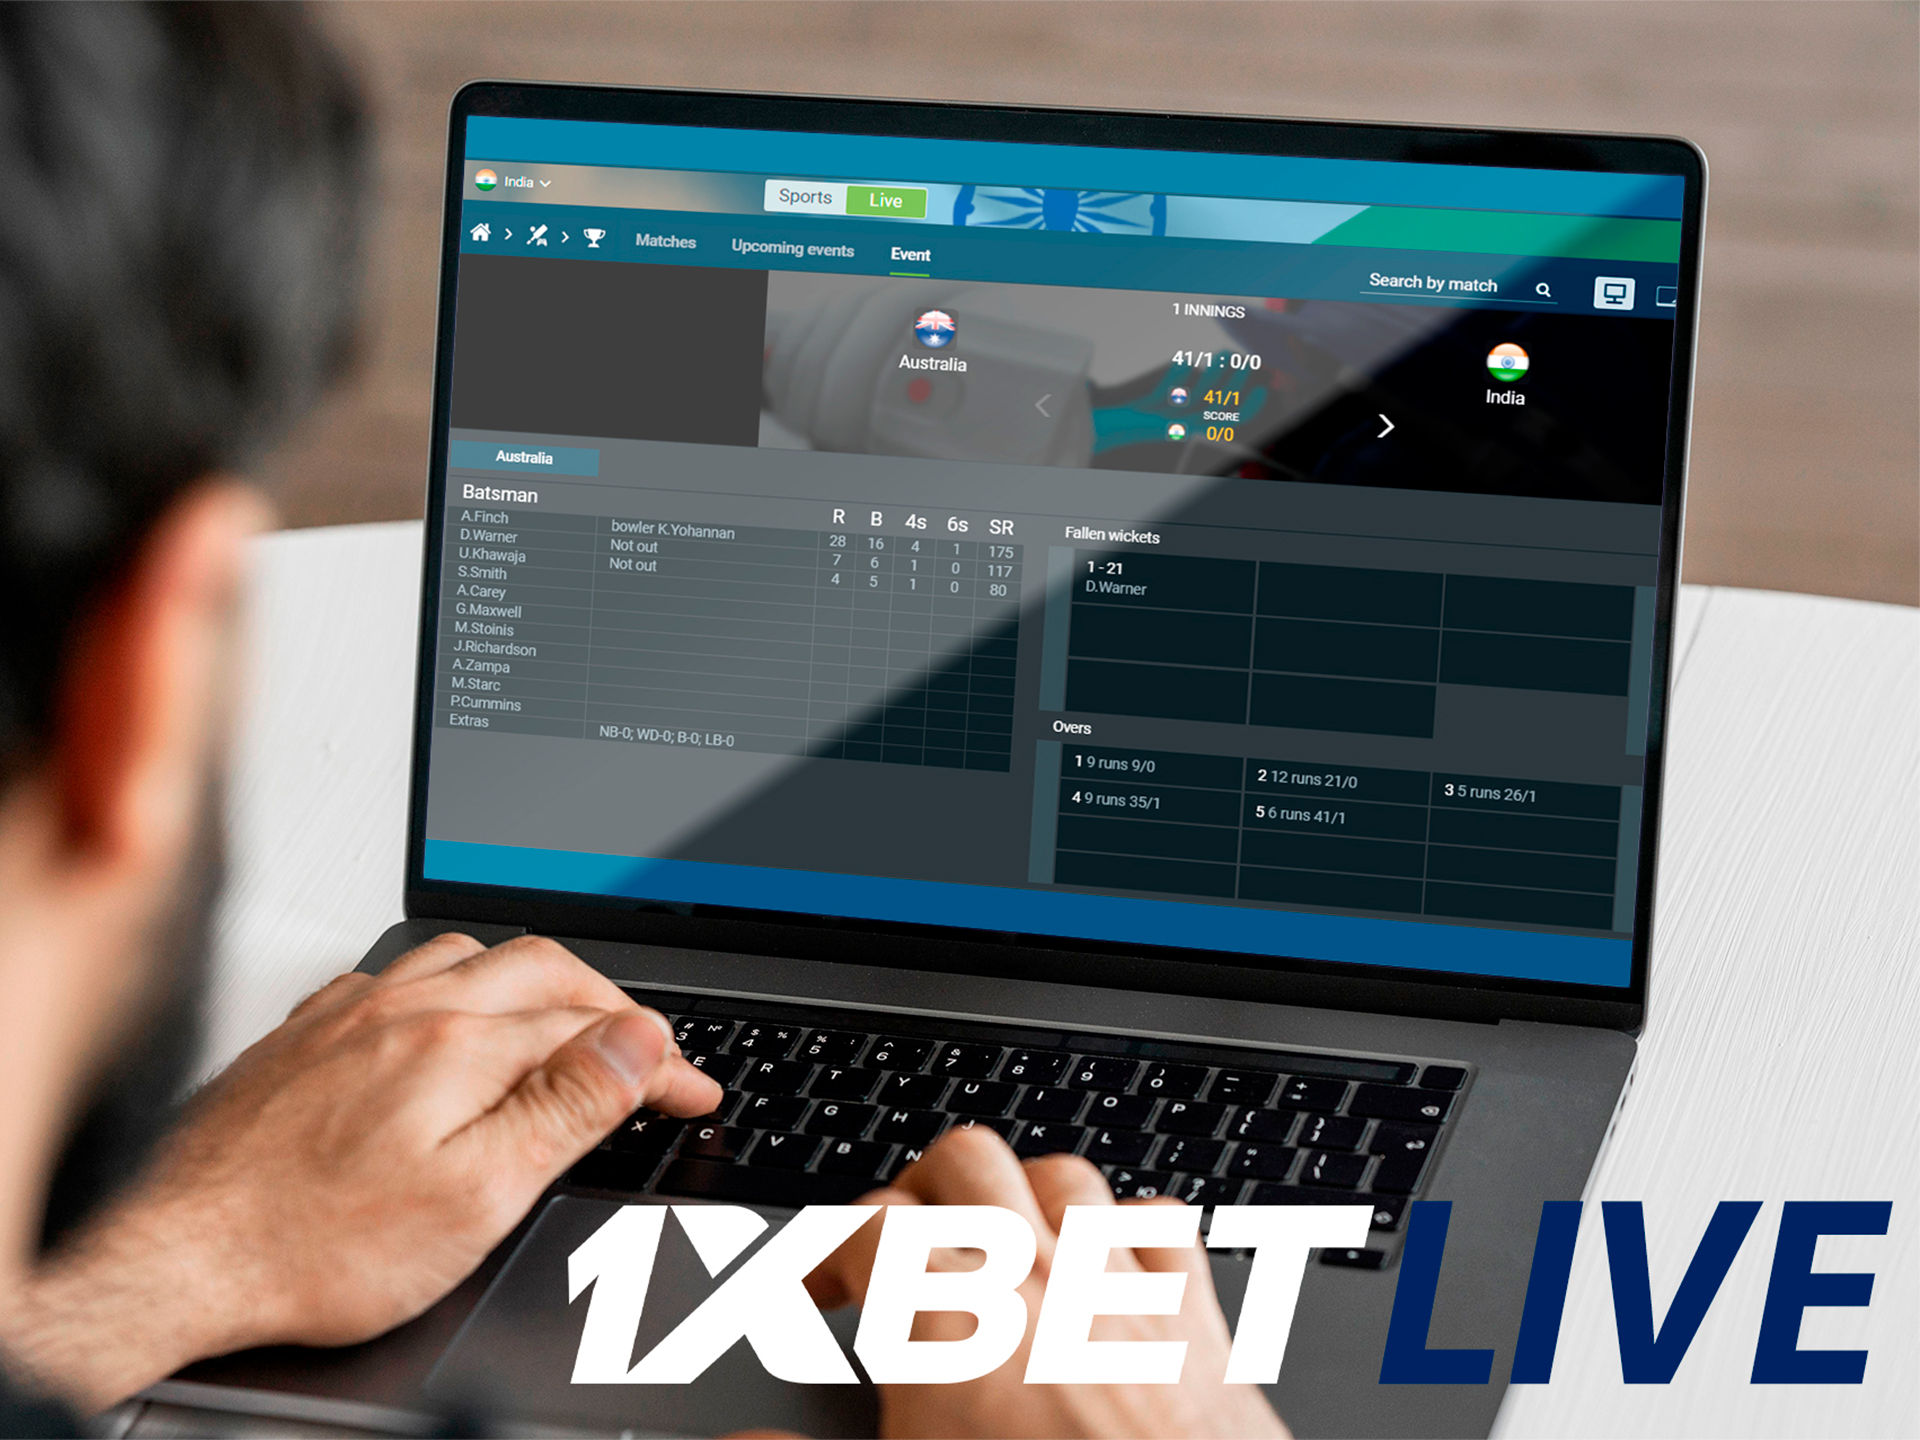 Bet on live events now!